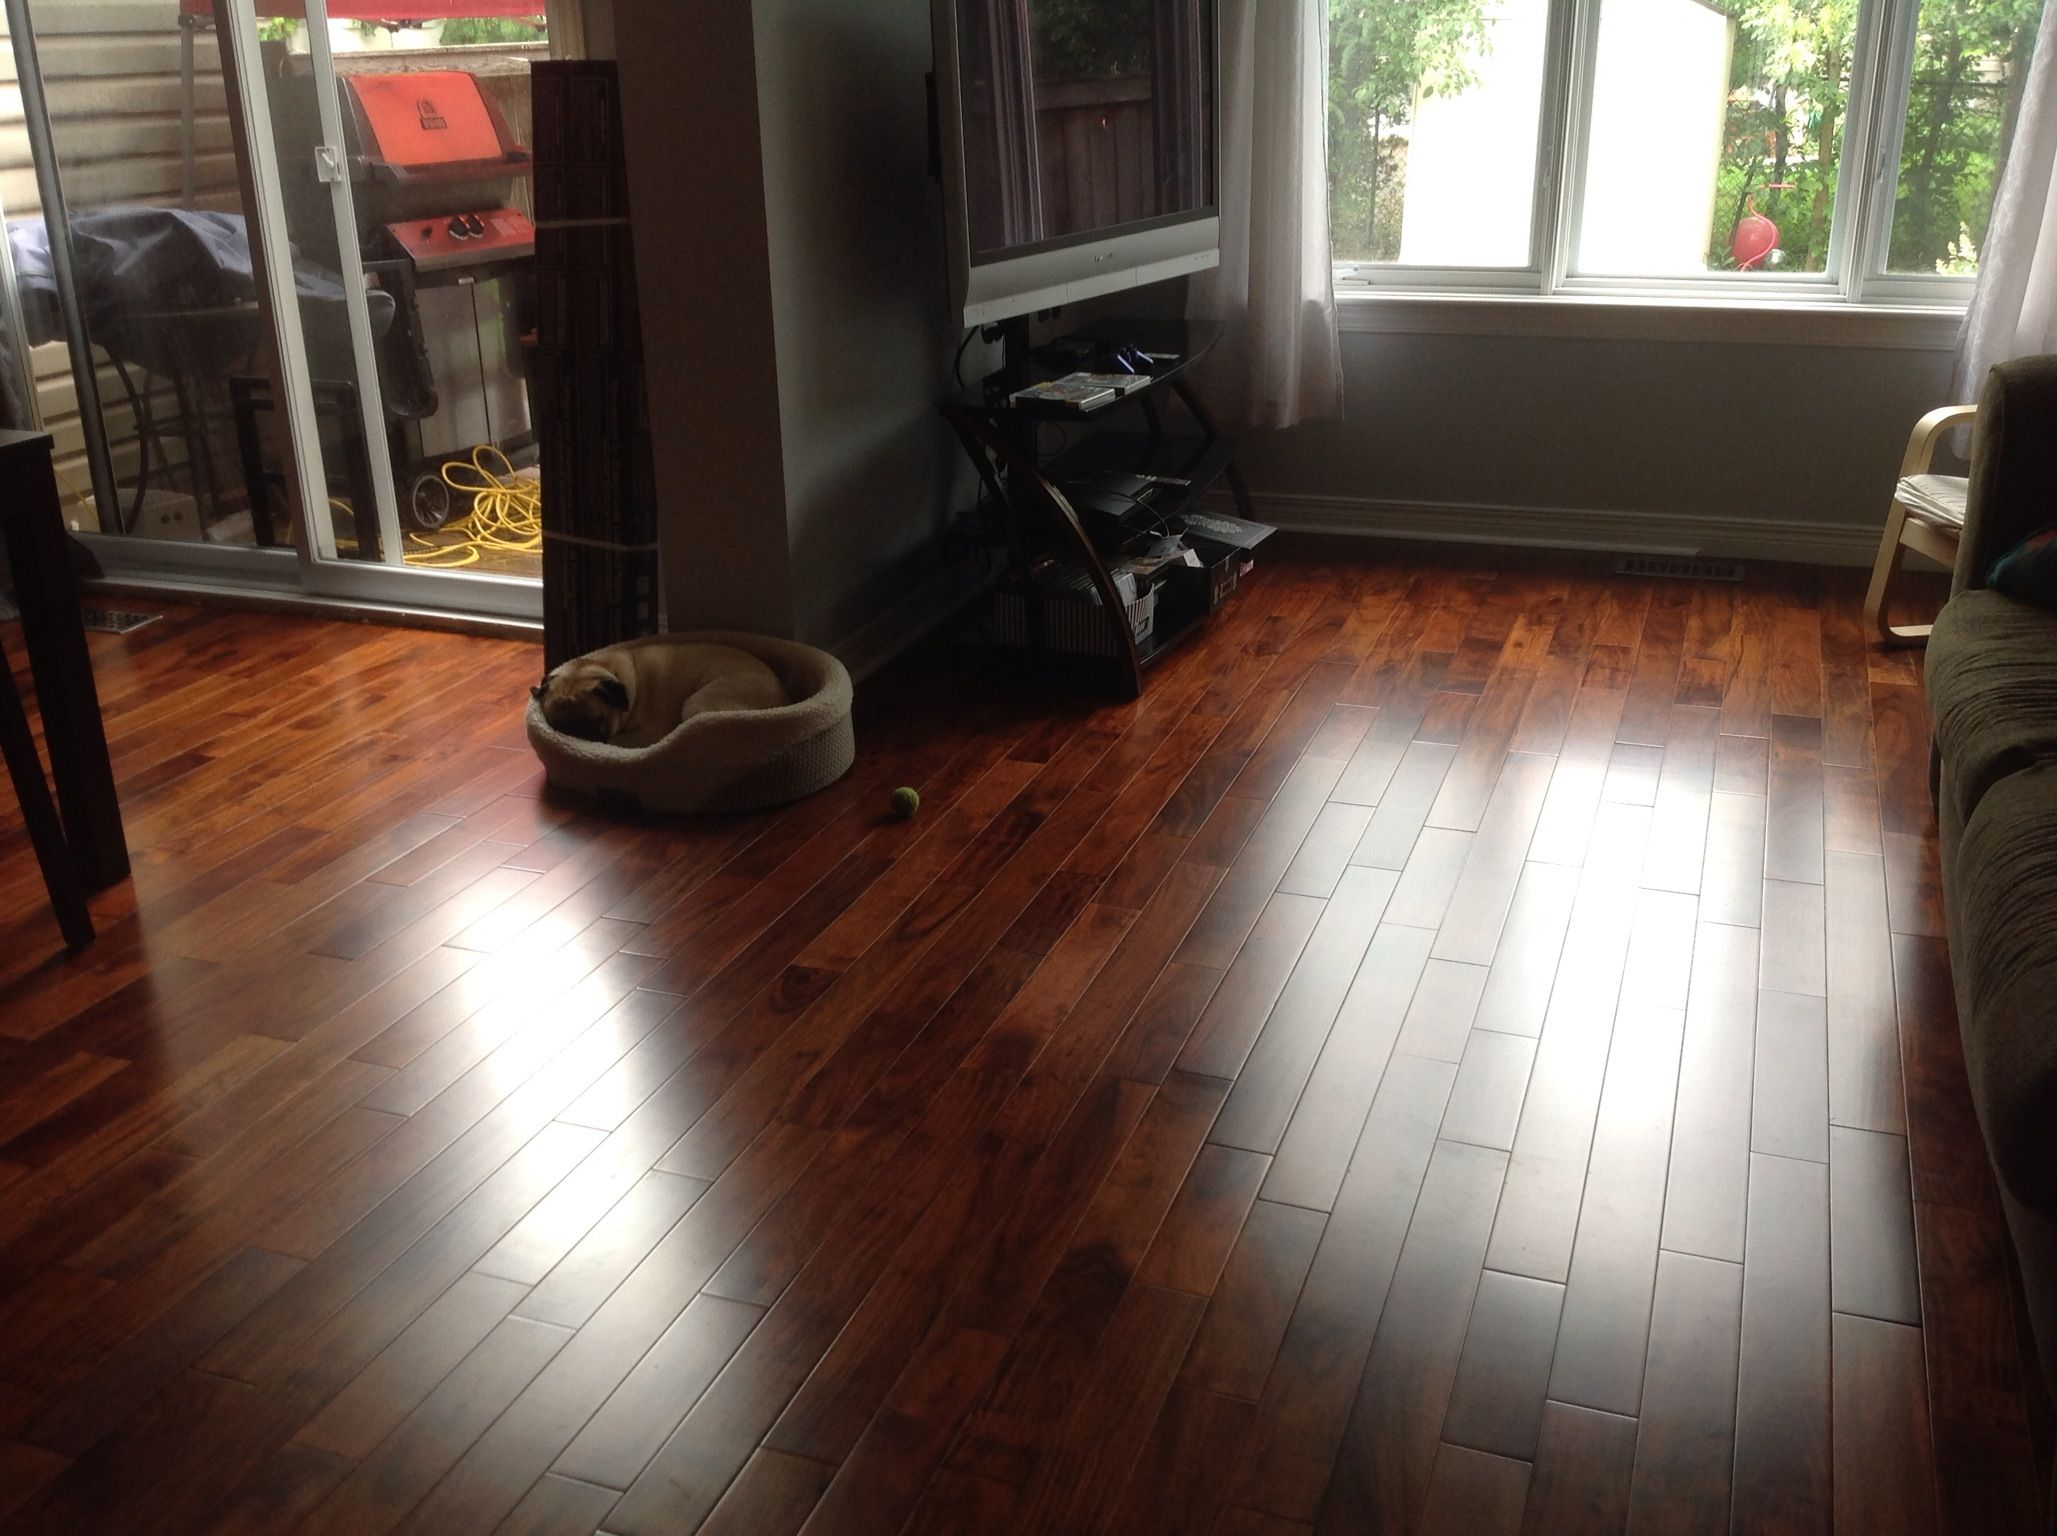 Hardwood floor Engineered Trillium Imperial Walnut from Home Depot